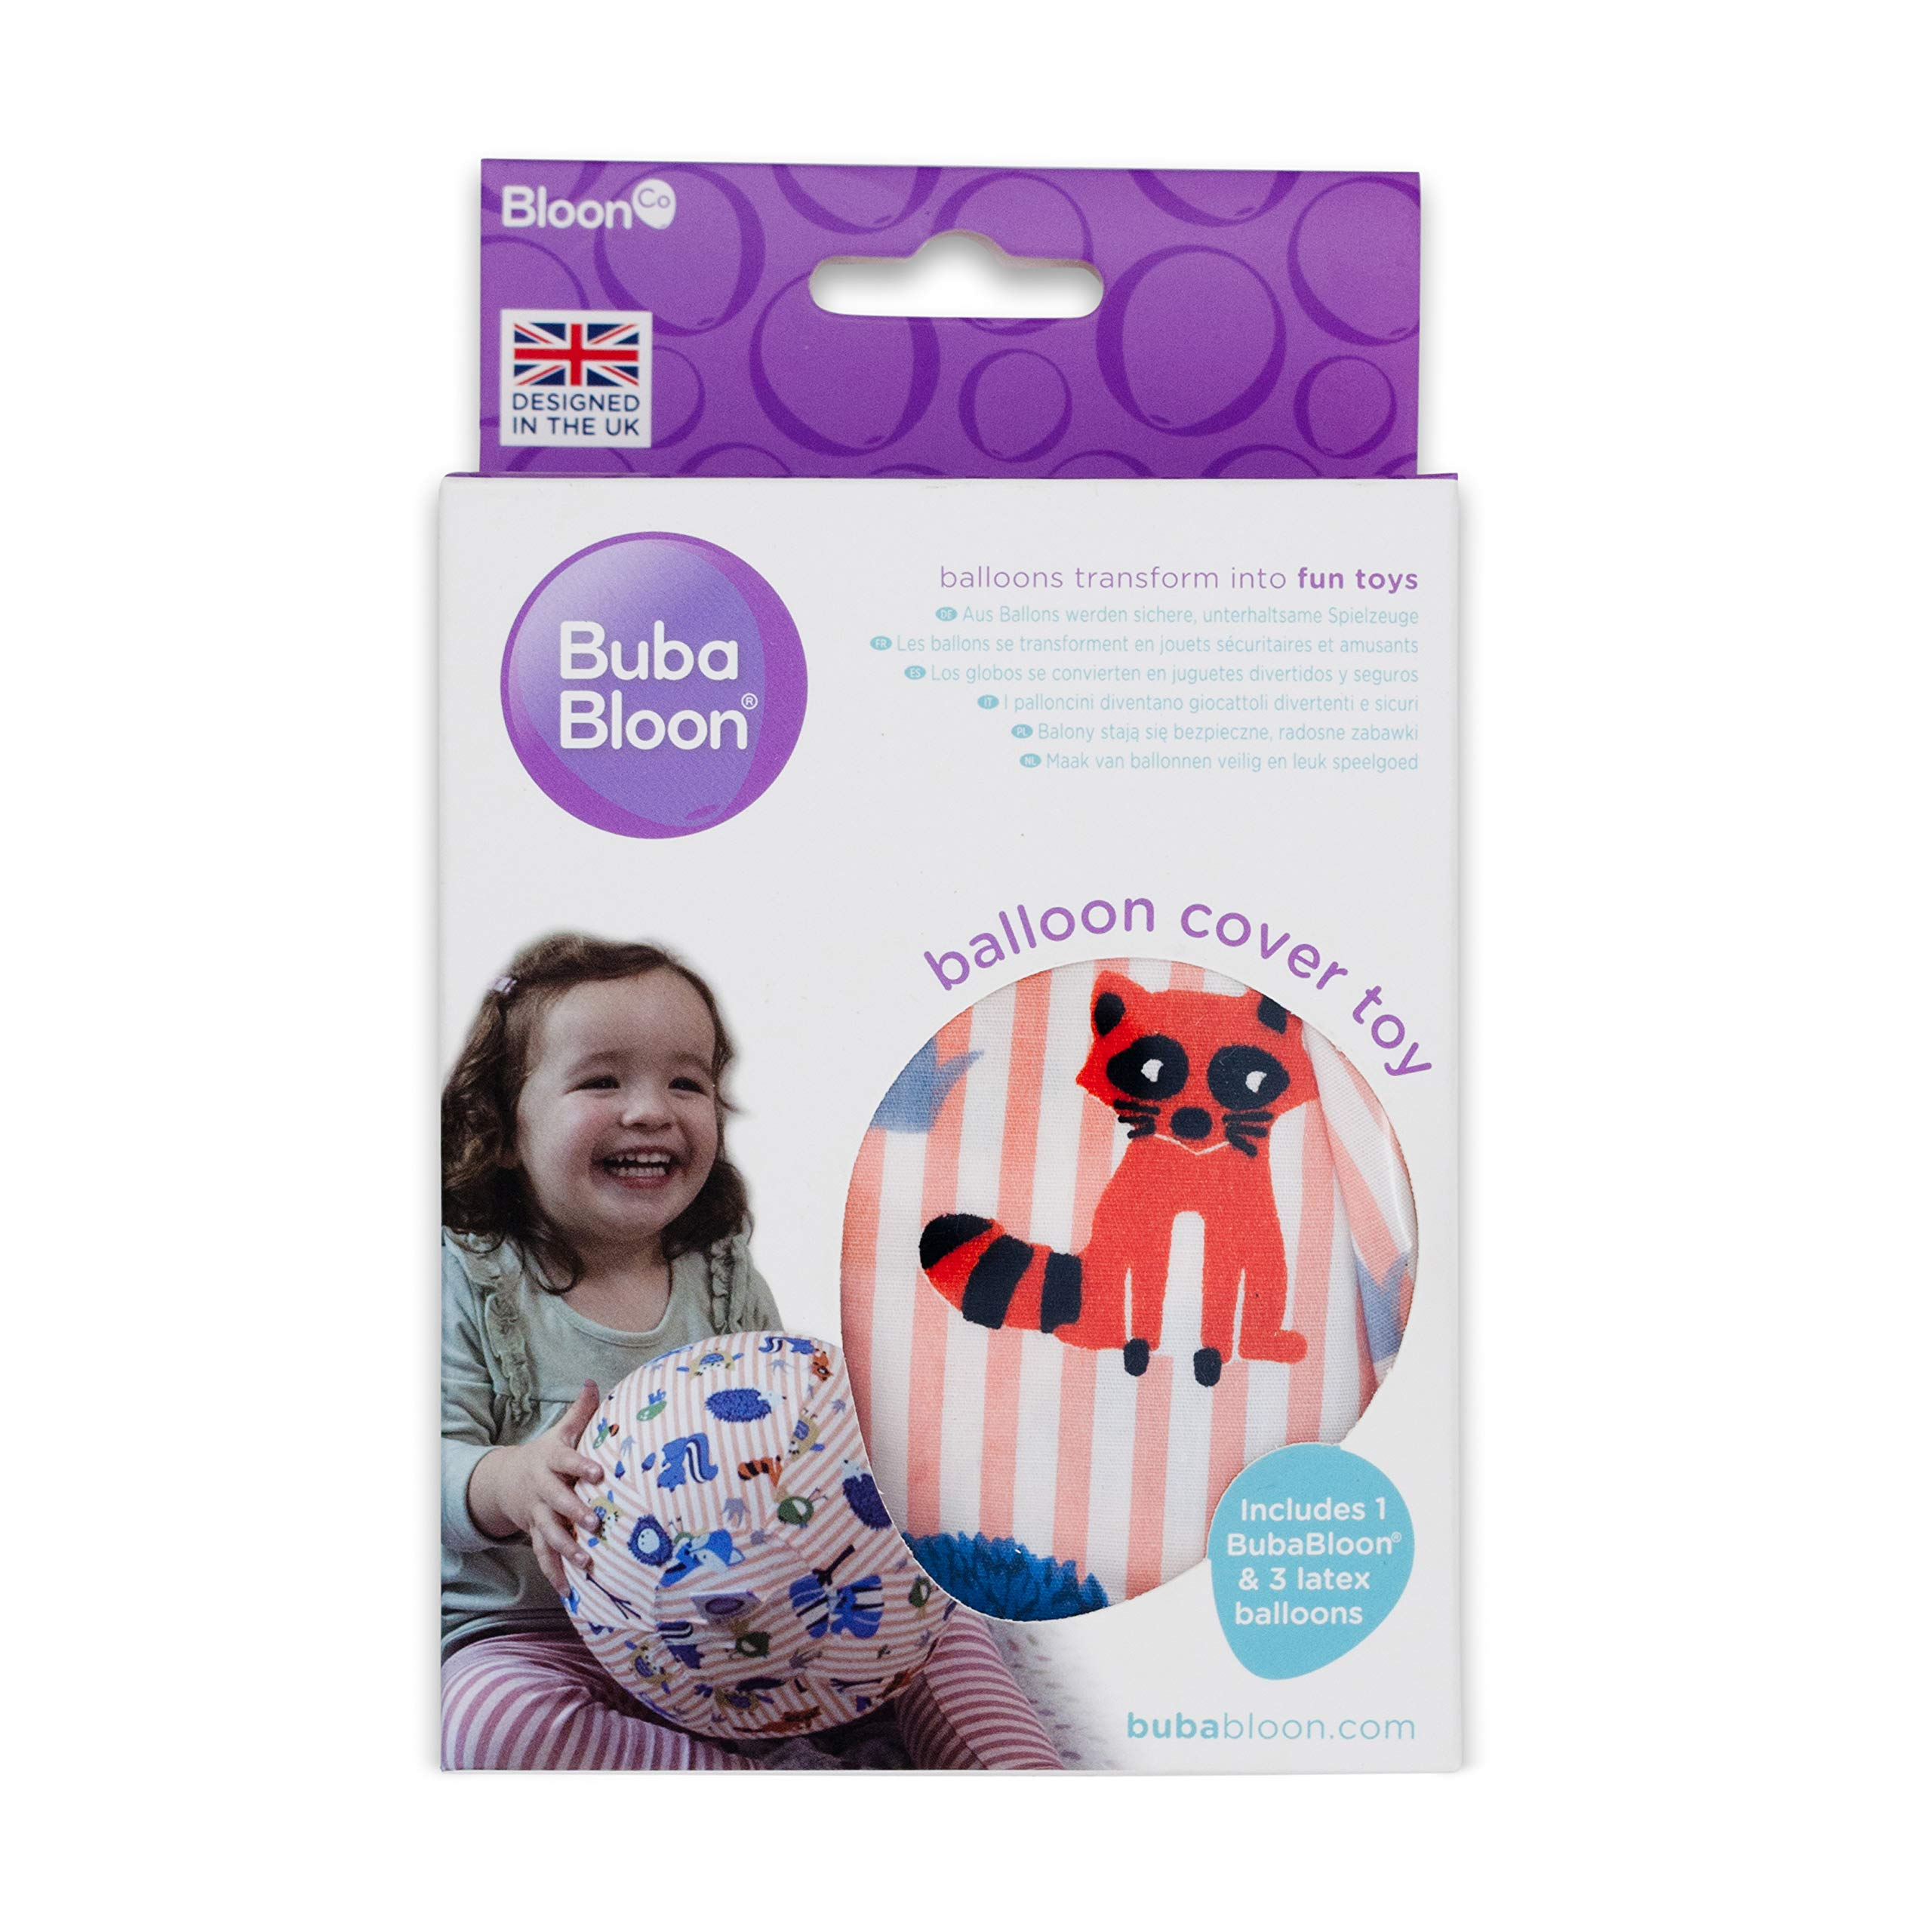 Bubabloon BB-390 Soft Cotton Balloon Cover Toy Safe Balloon Play Animal Stripes Pink